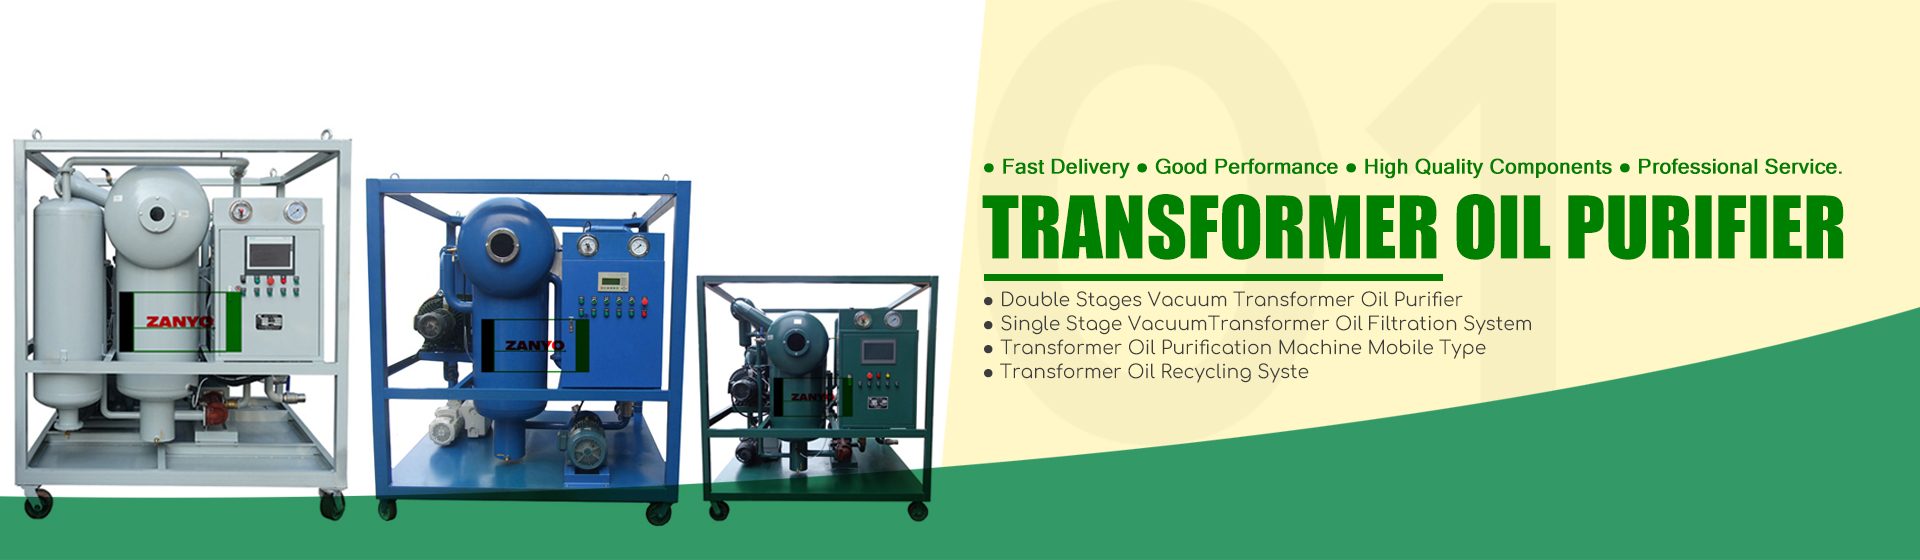 TRANSFORMER OIL PURIFIER CHINA MANUFACTURER ZANYO